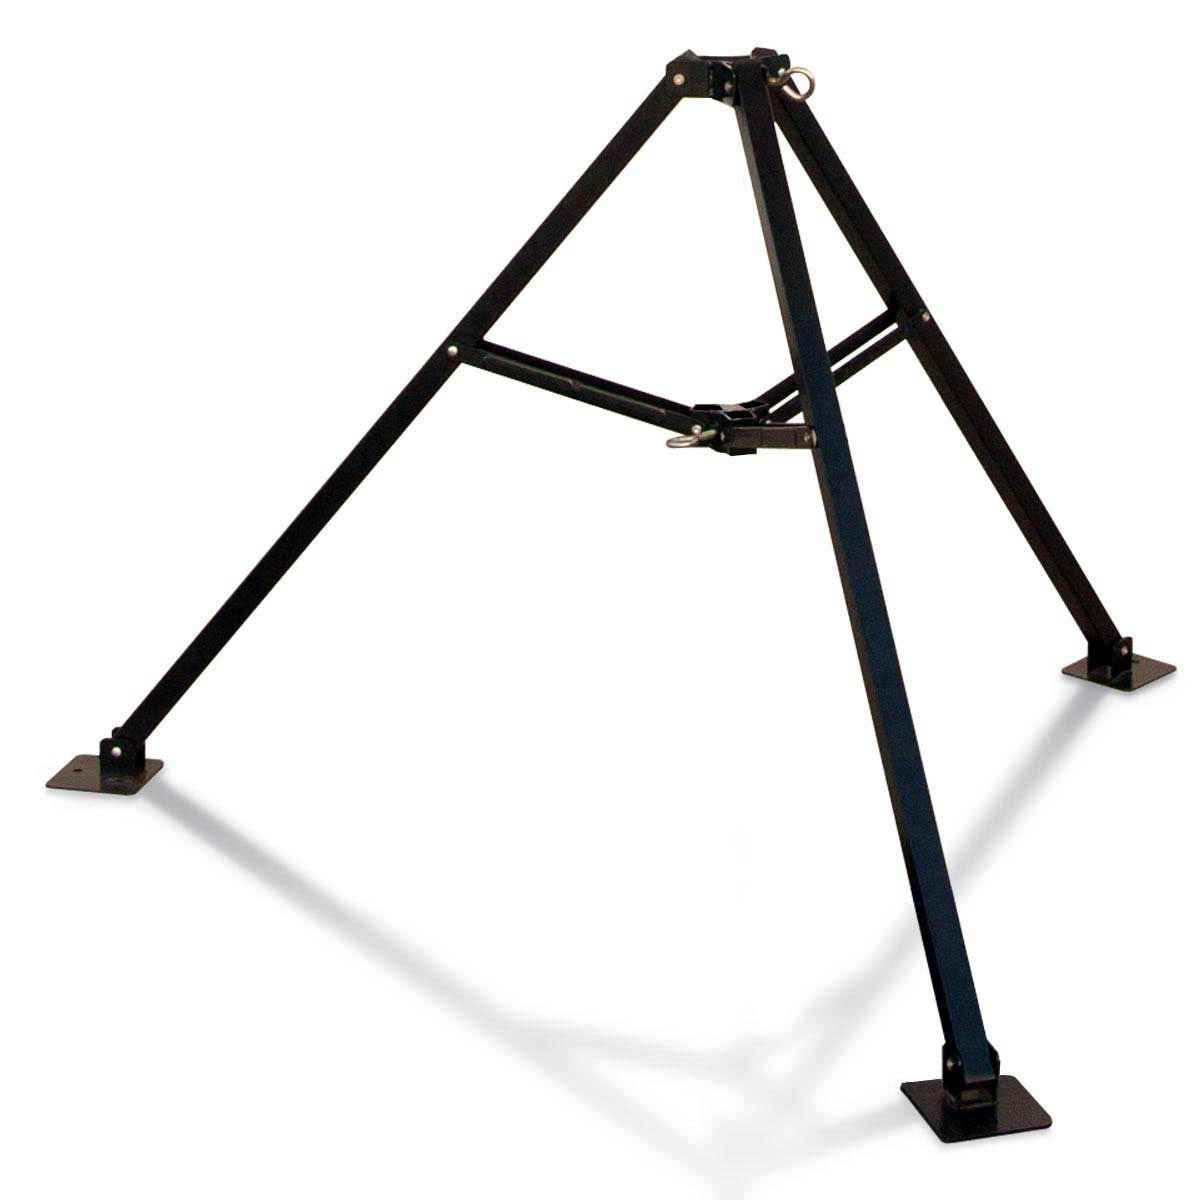 TRIPOD STAND FOR UMBRELLA. Pack 1. UB50